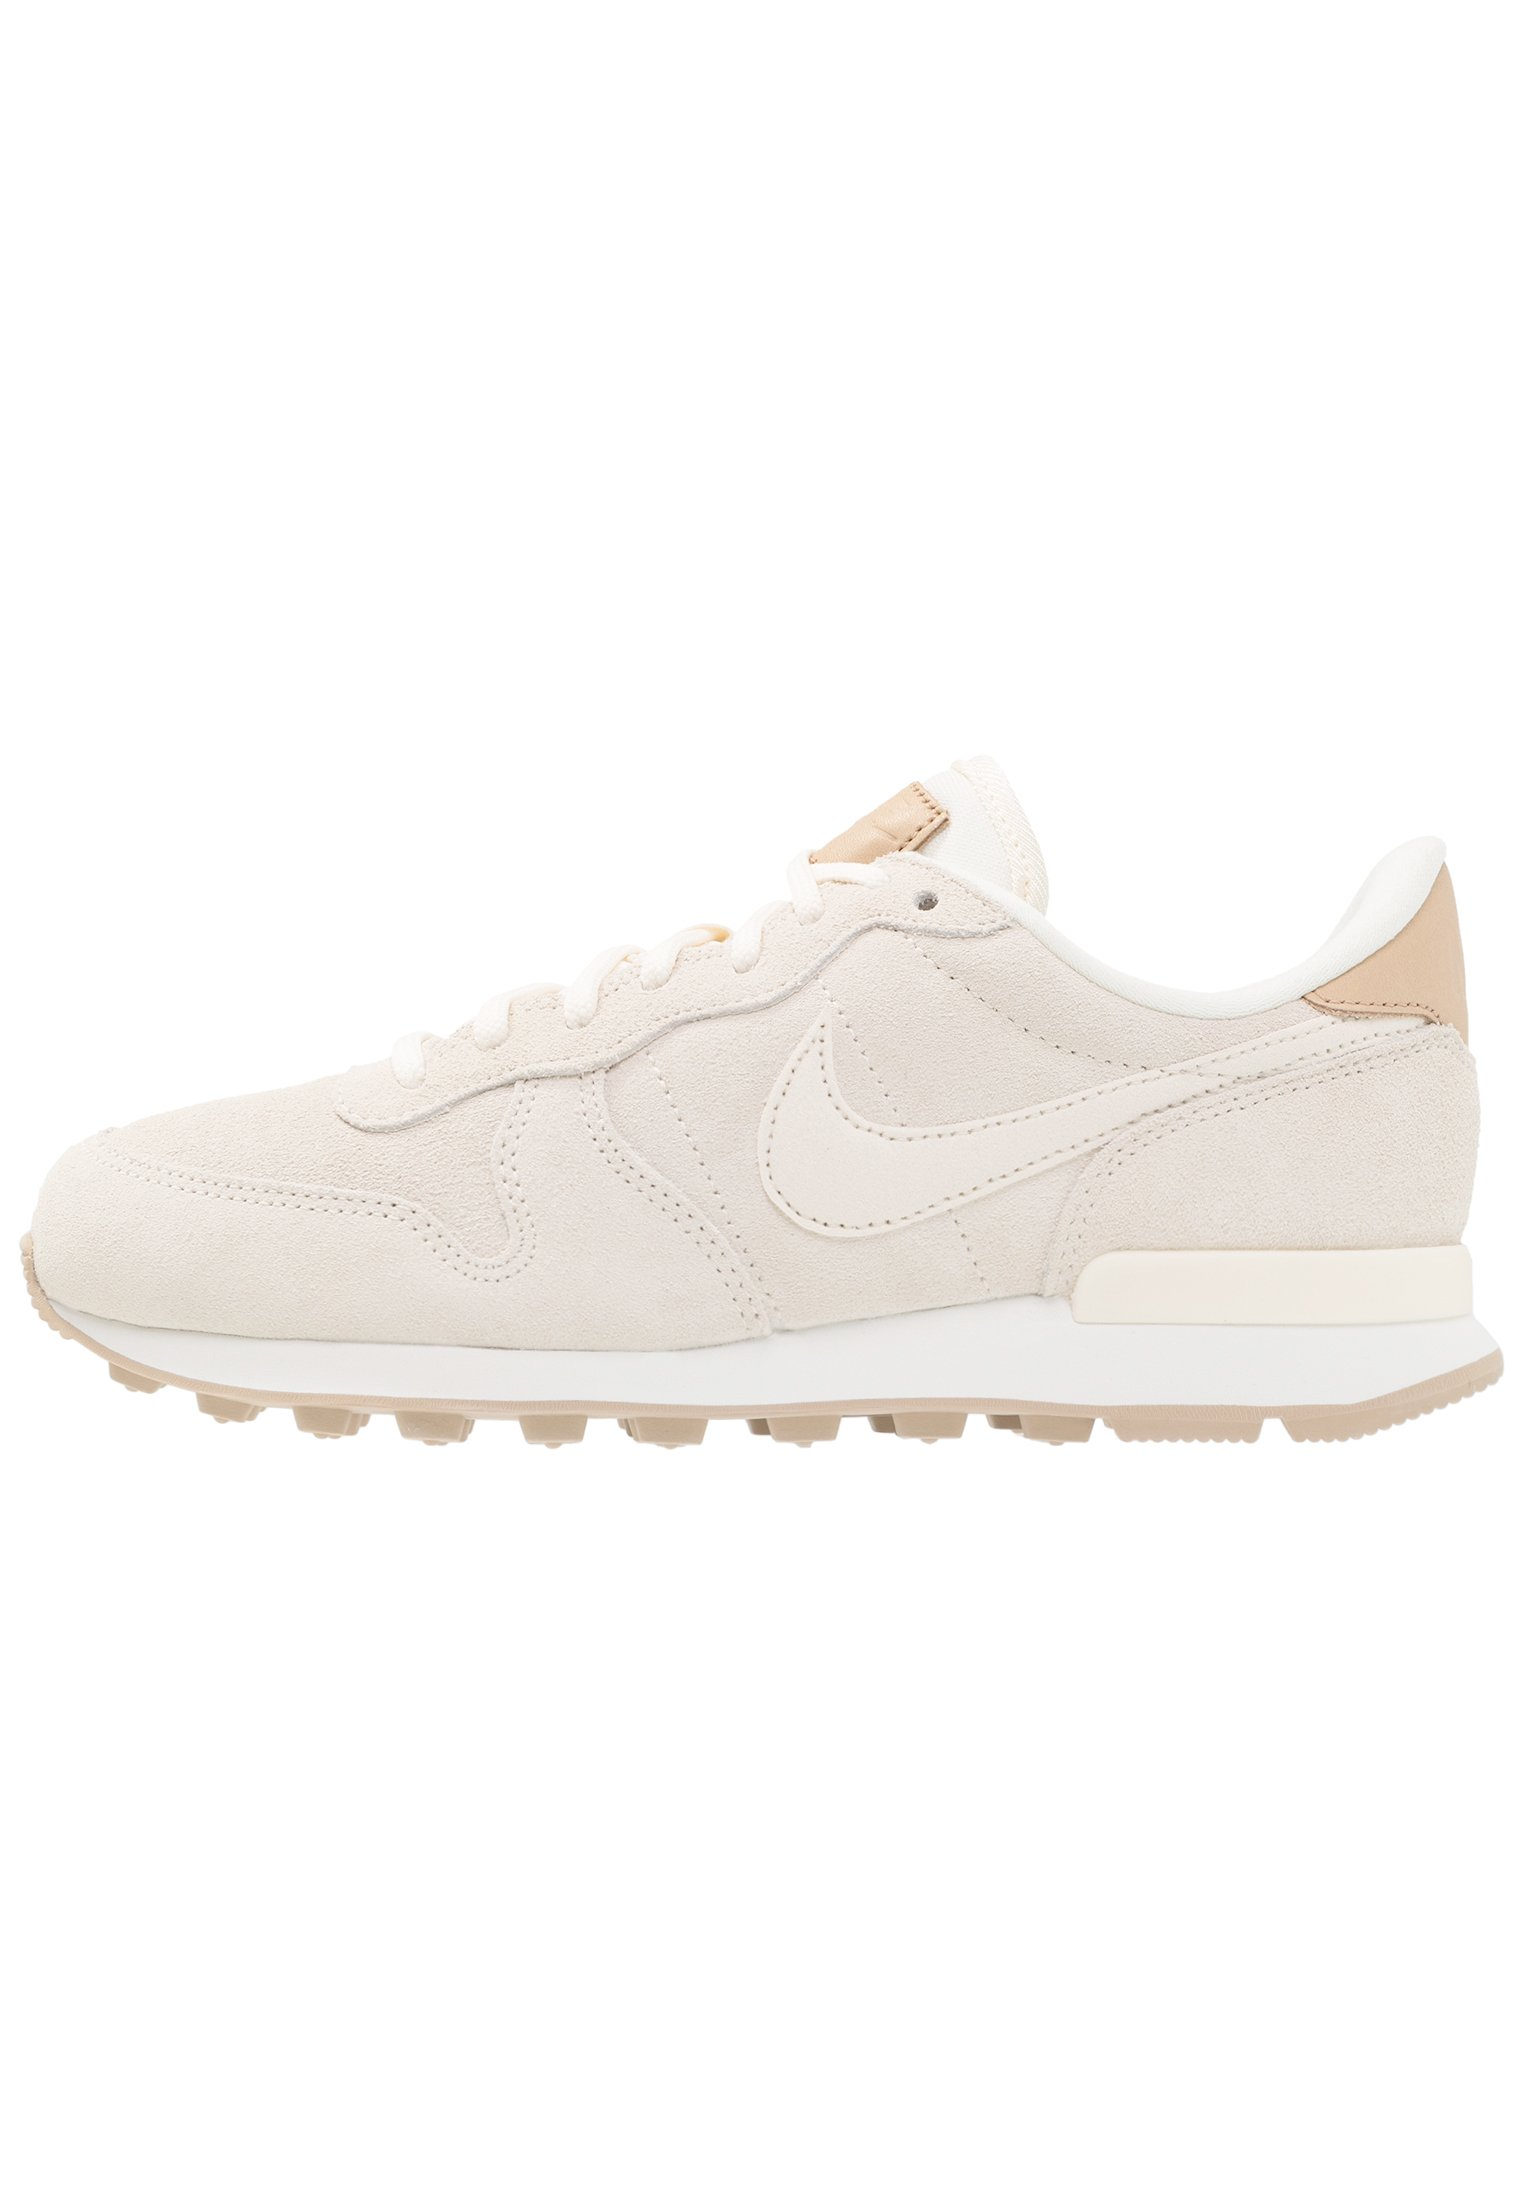 Nike Sportswear Internationalist Prm - Joggesko Pale Ivory/summit White/tan/offwhite